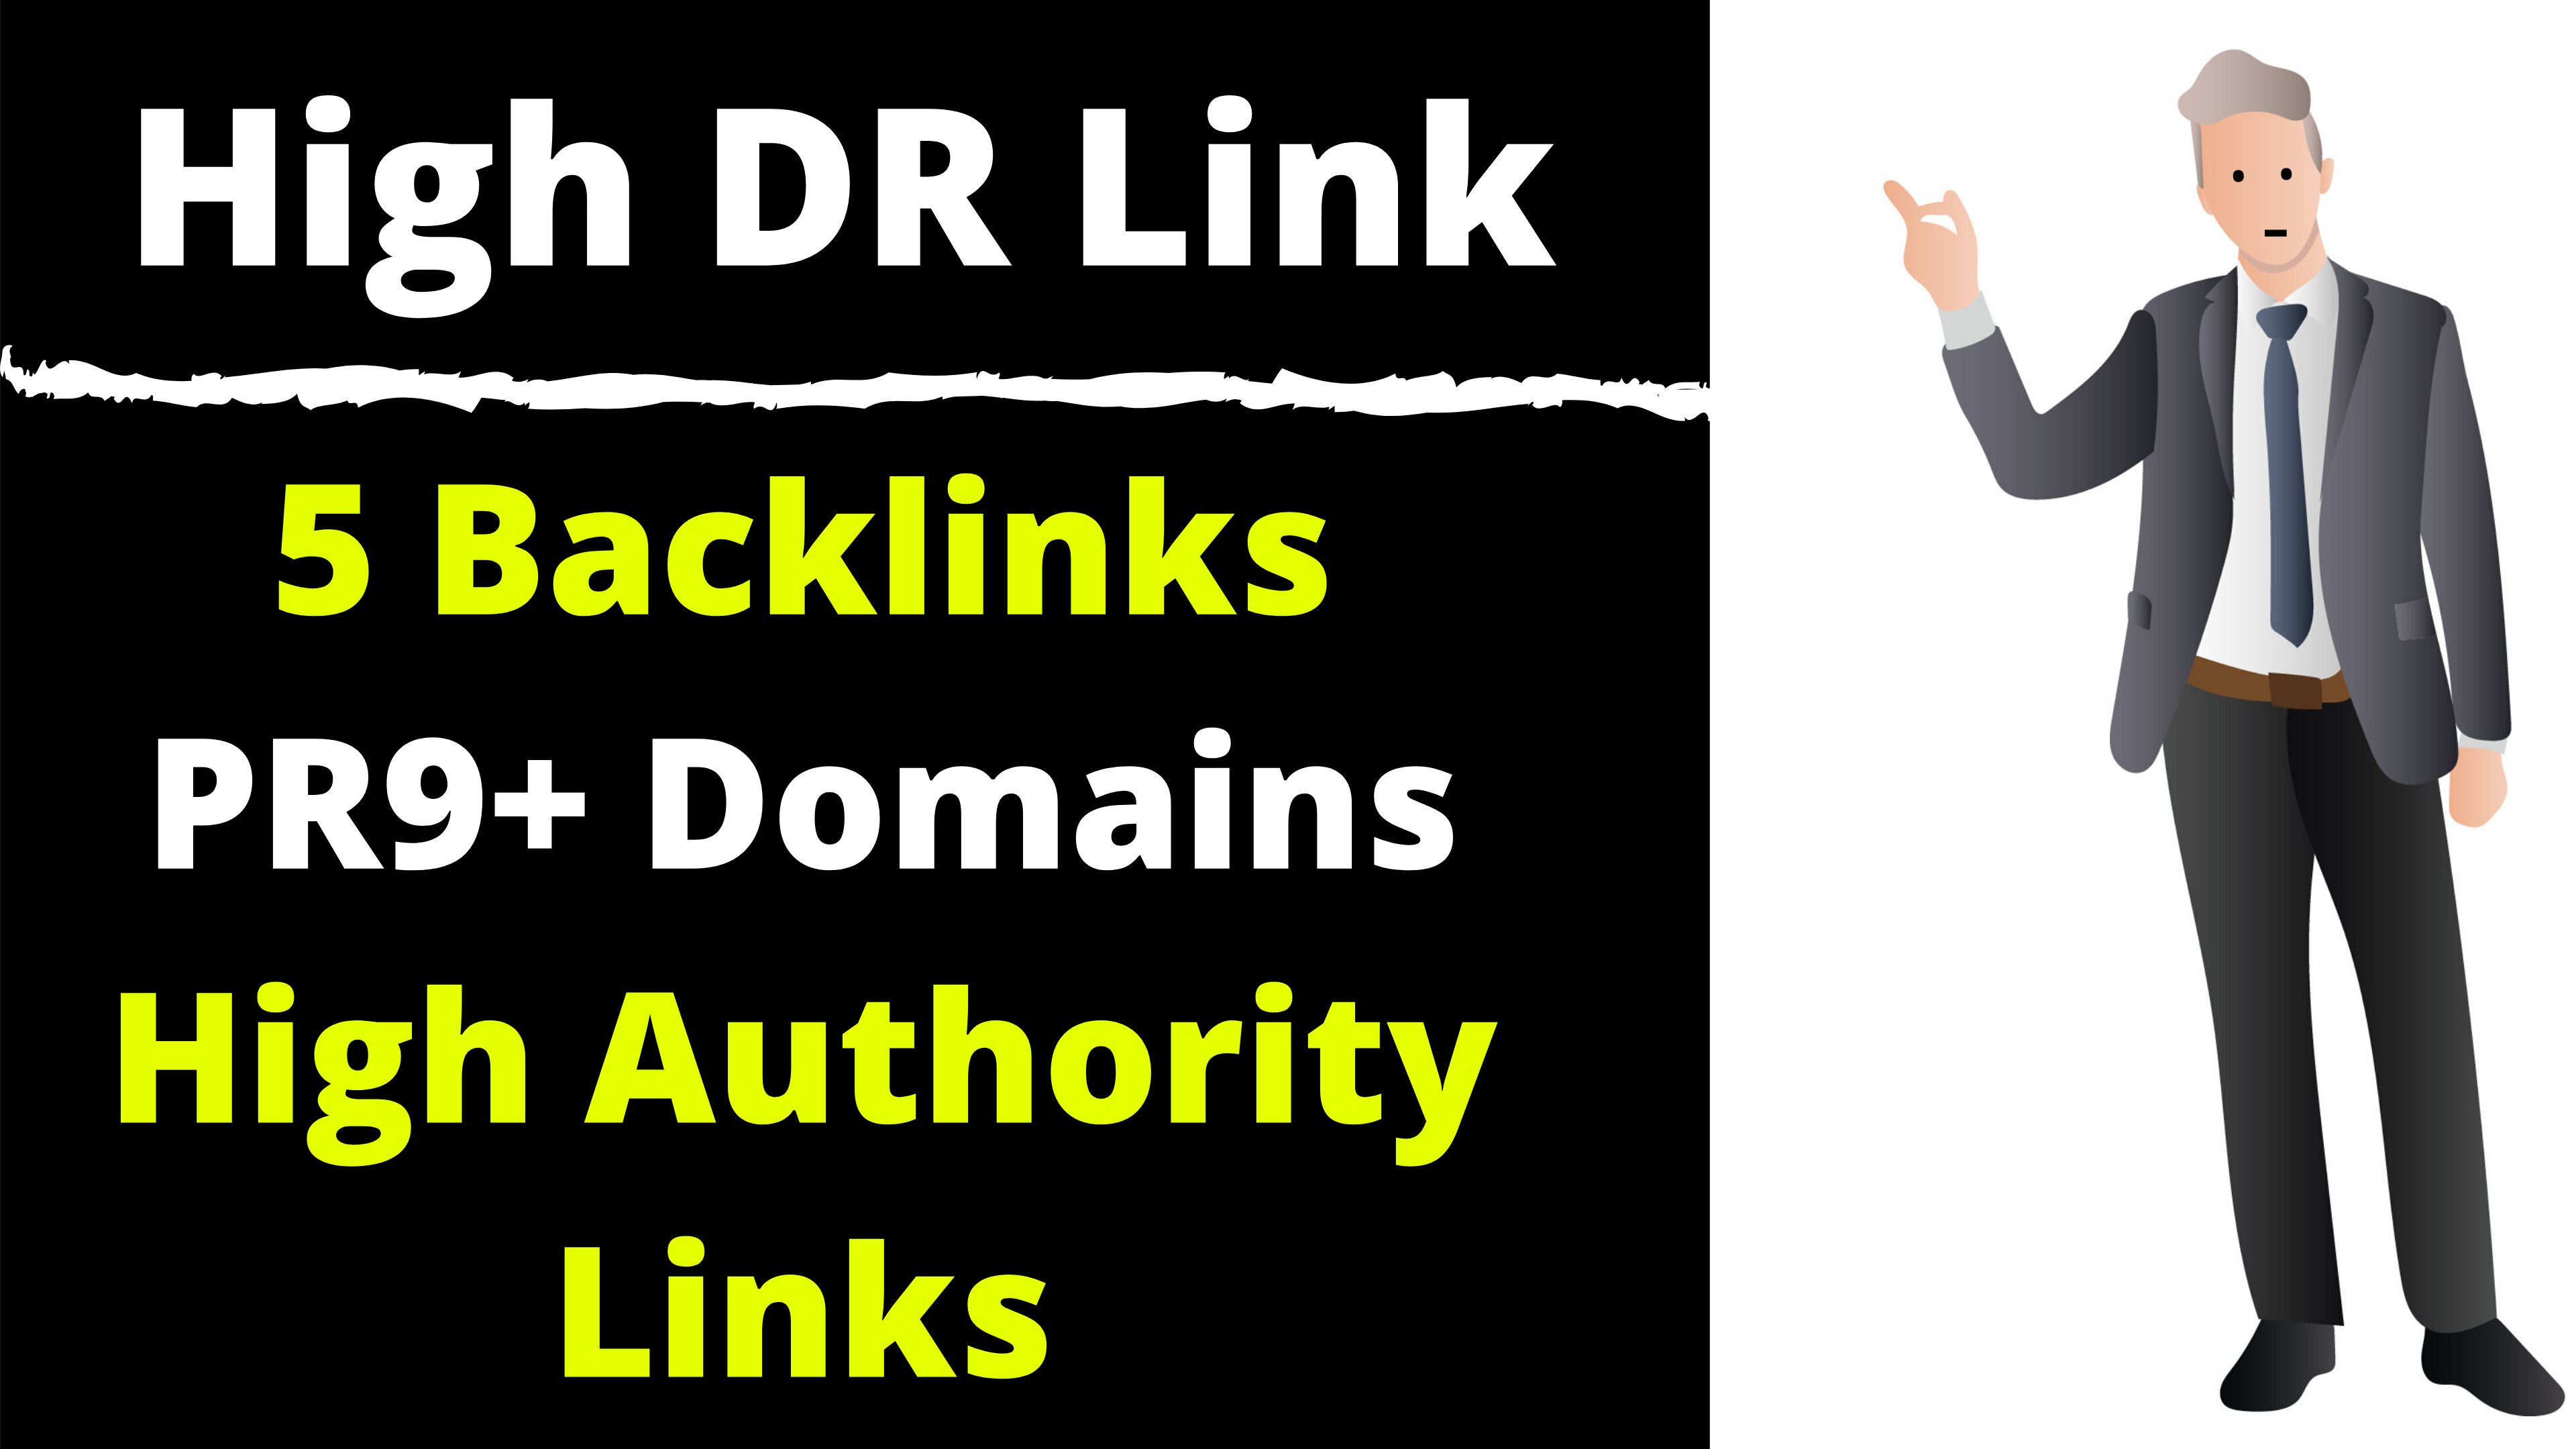 PR9 Sites 5 Backlinks Google Ranking Your Site Shoot Out